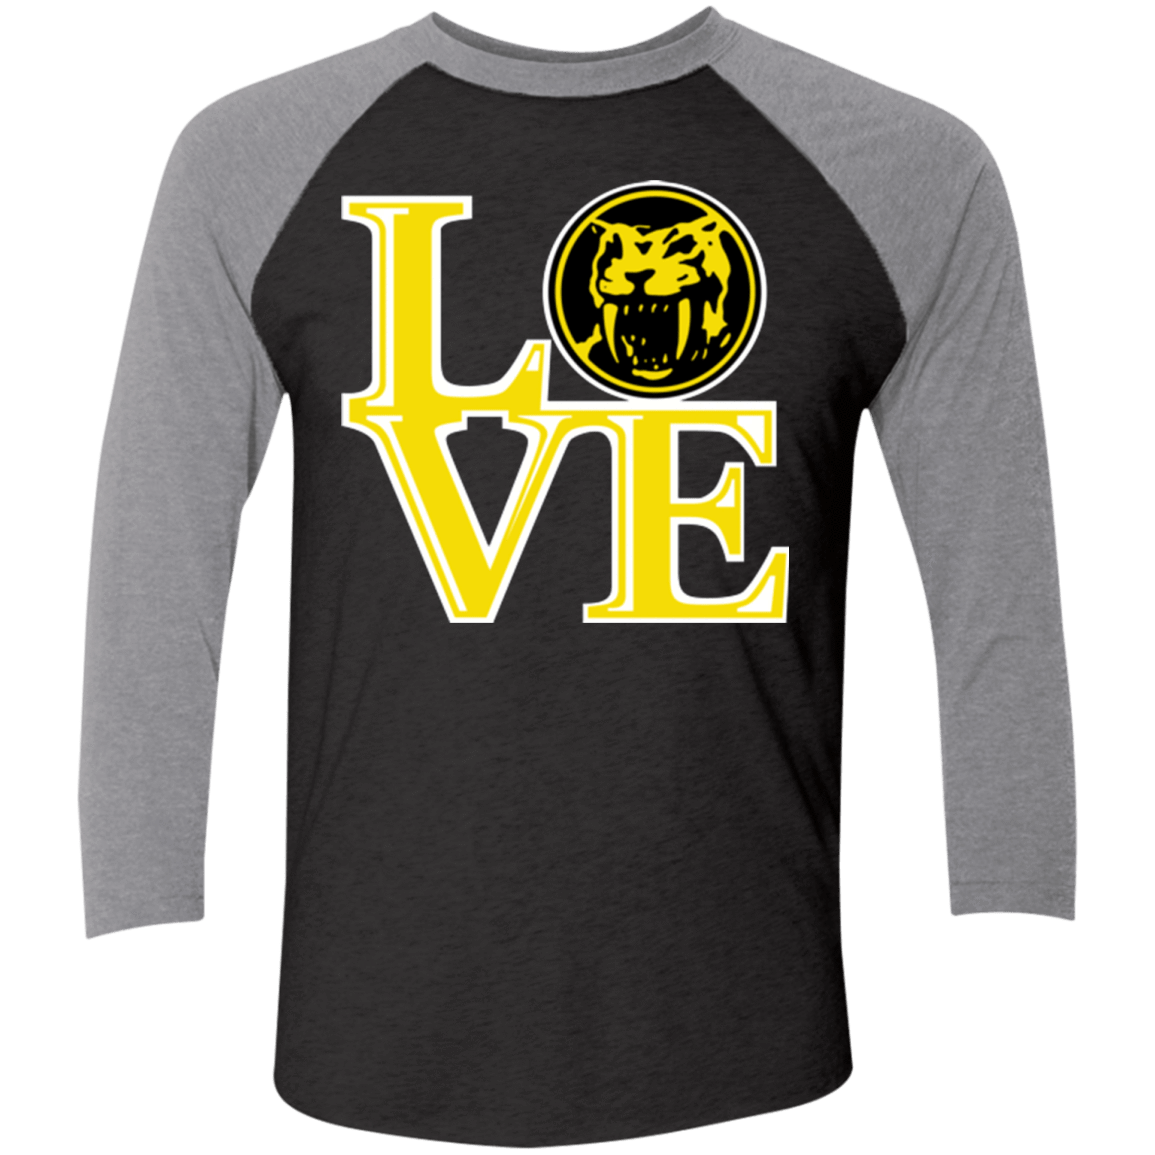 T-Shirts Vintage Black/Premium Heather / X-Small Yellow Ranger LOVE Men's Triblend 3/4 Sleeve